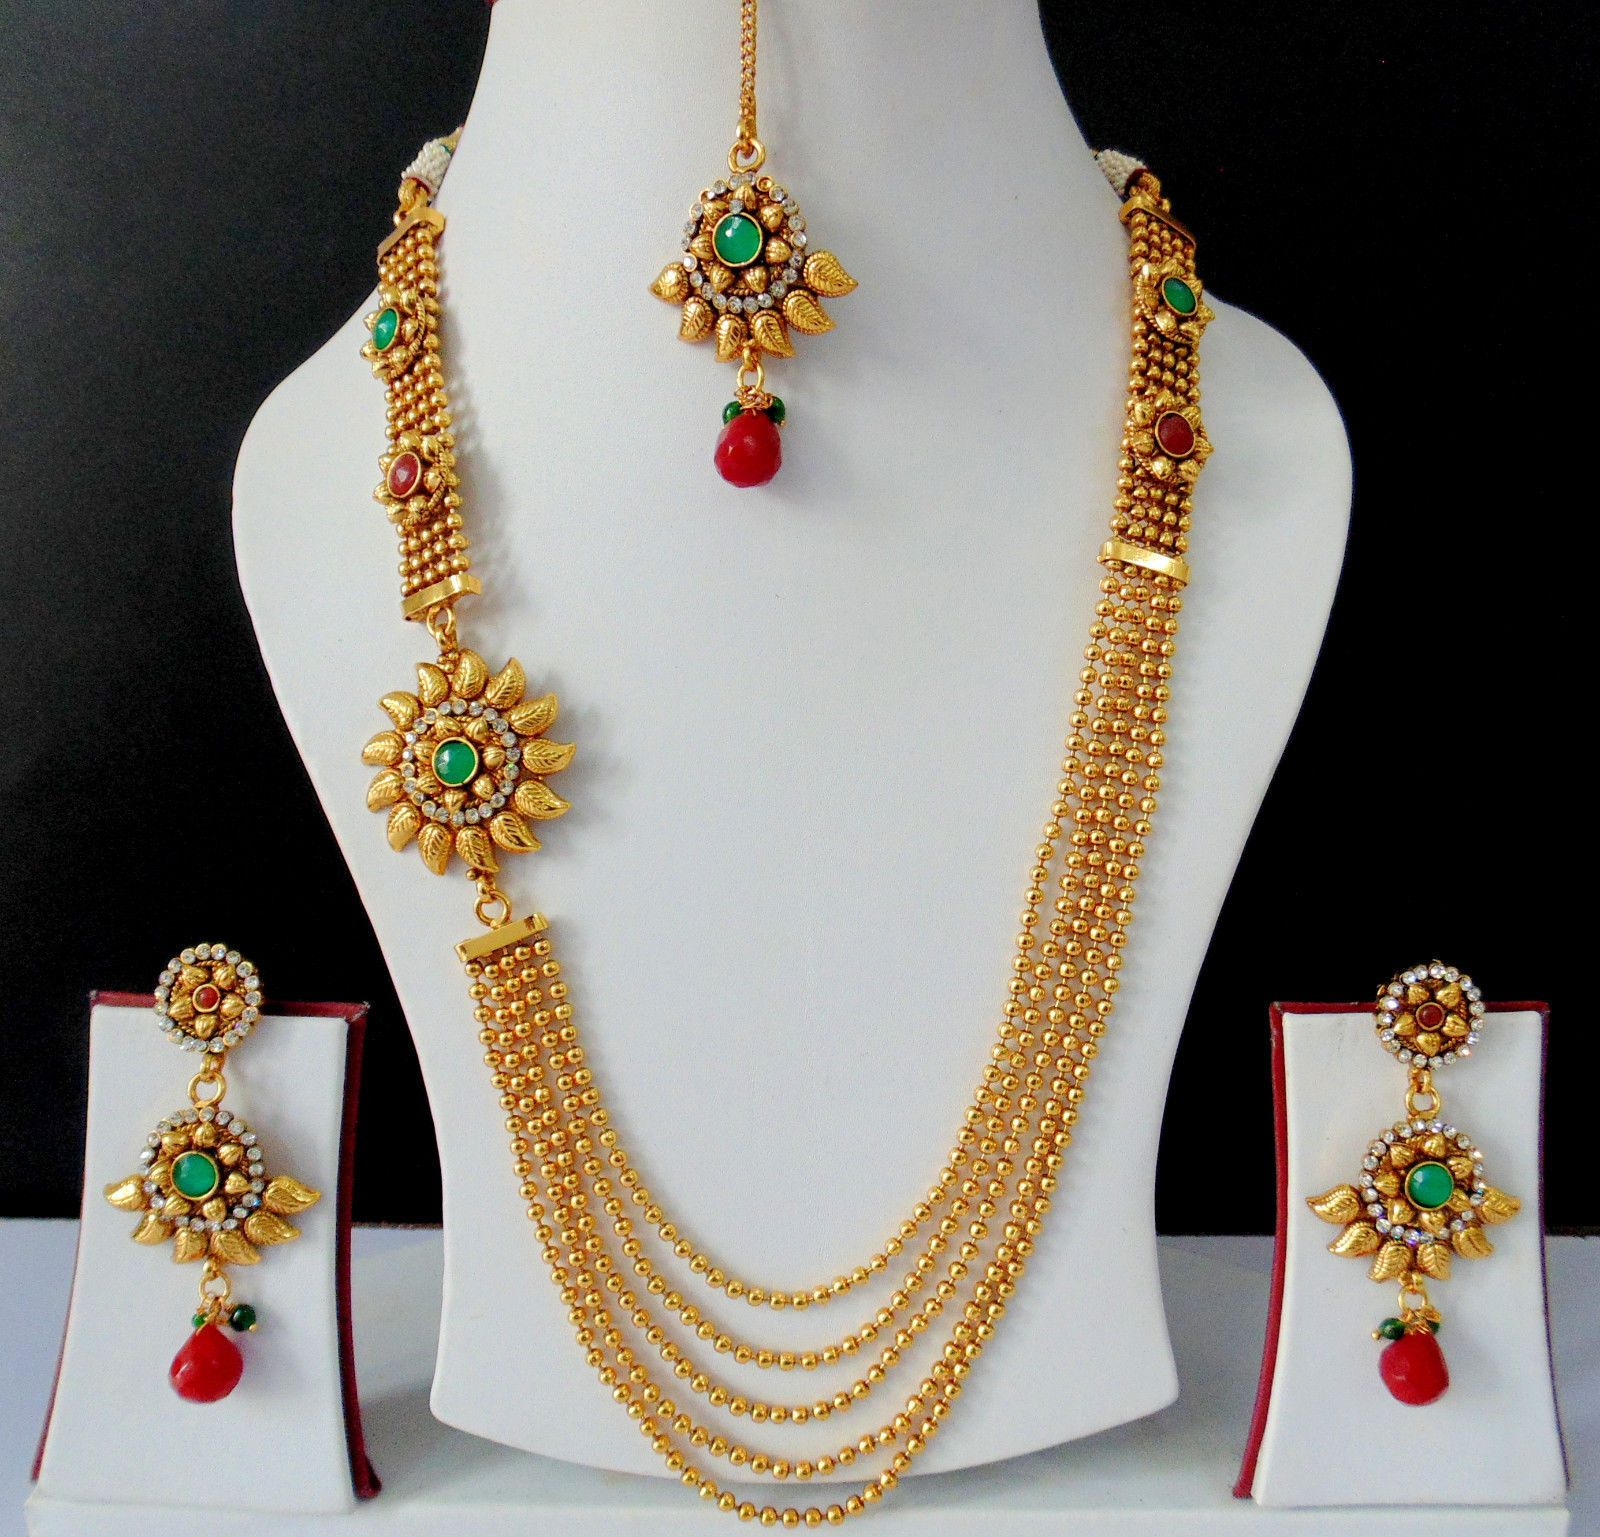 Gold rani haar pictures to pin on pinterest - Ethnic Indian Jewelry Bollywood Polki Long Necklace Earrings Tikka Royal Jpg 1600 1537 Saree Pinterest Indian Jewelry Bollywood And Ethnic